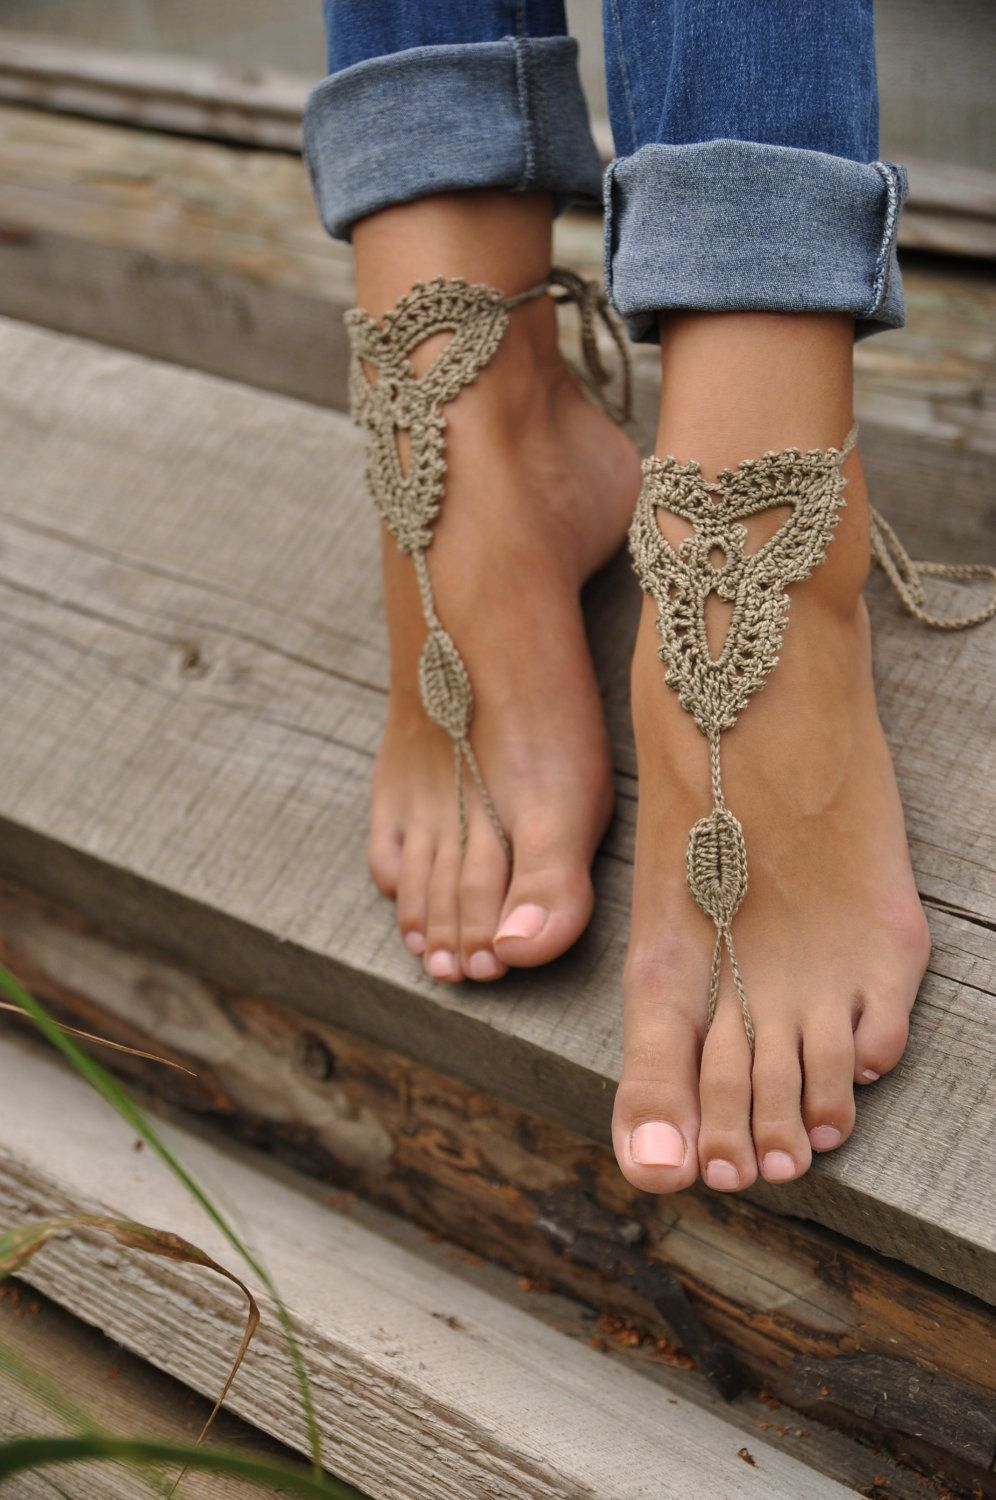 bellydance beach wedding via anklet sexy sandals steampunk tan lace nude foot etsy barefoot victorian shoes pin crochet yoga pool jewelry